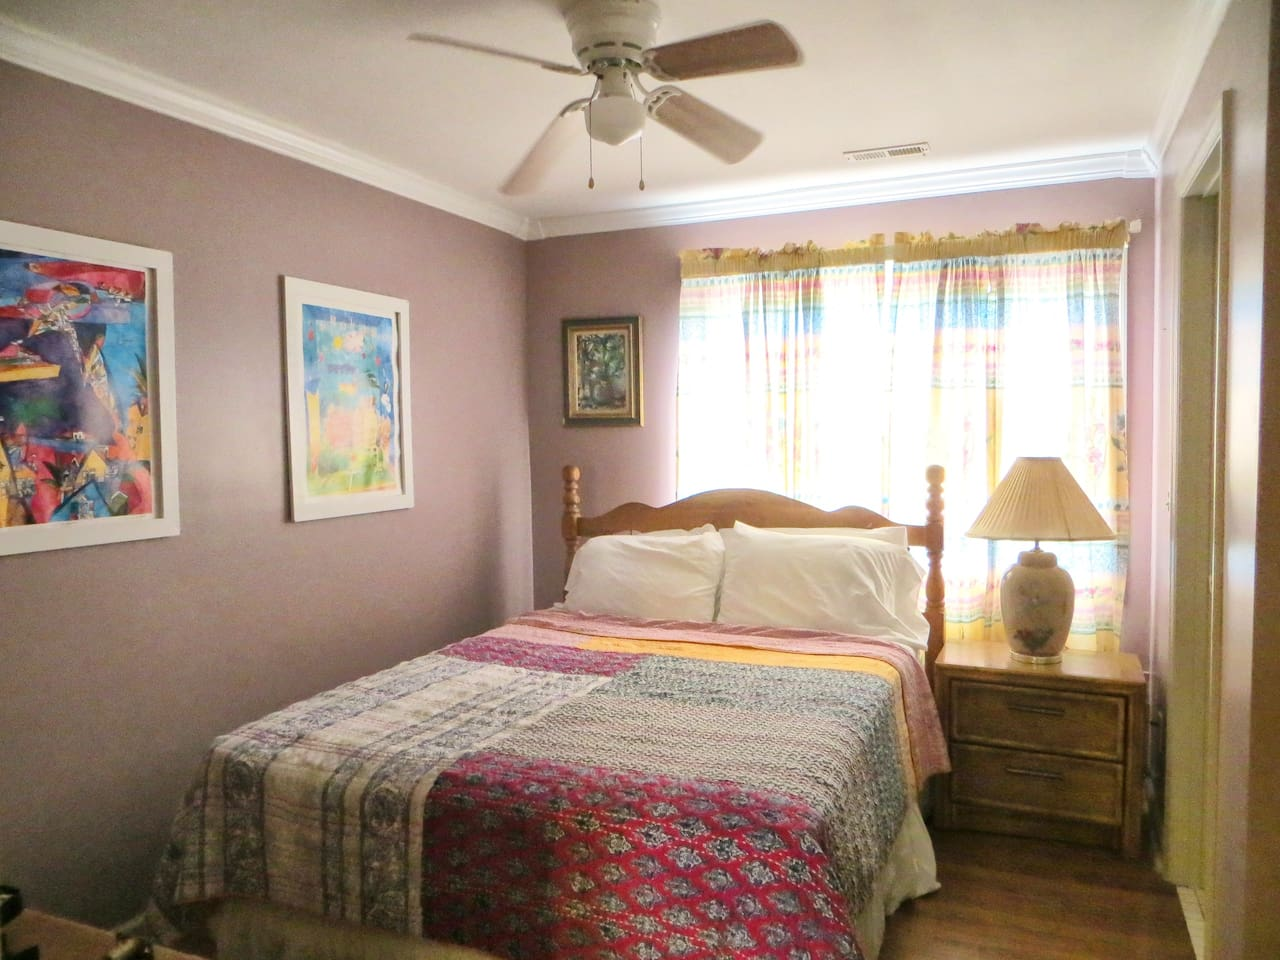 Relax in this cozy room, with a private bathroom, in a queen size bed and a view of the garden. Room 3 A.